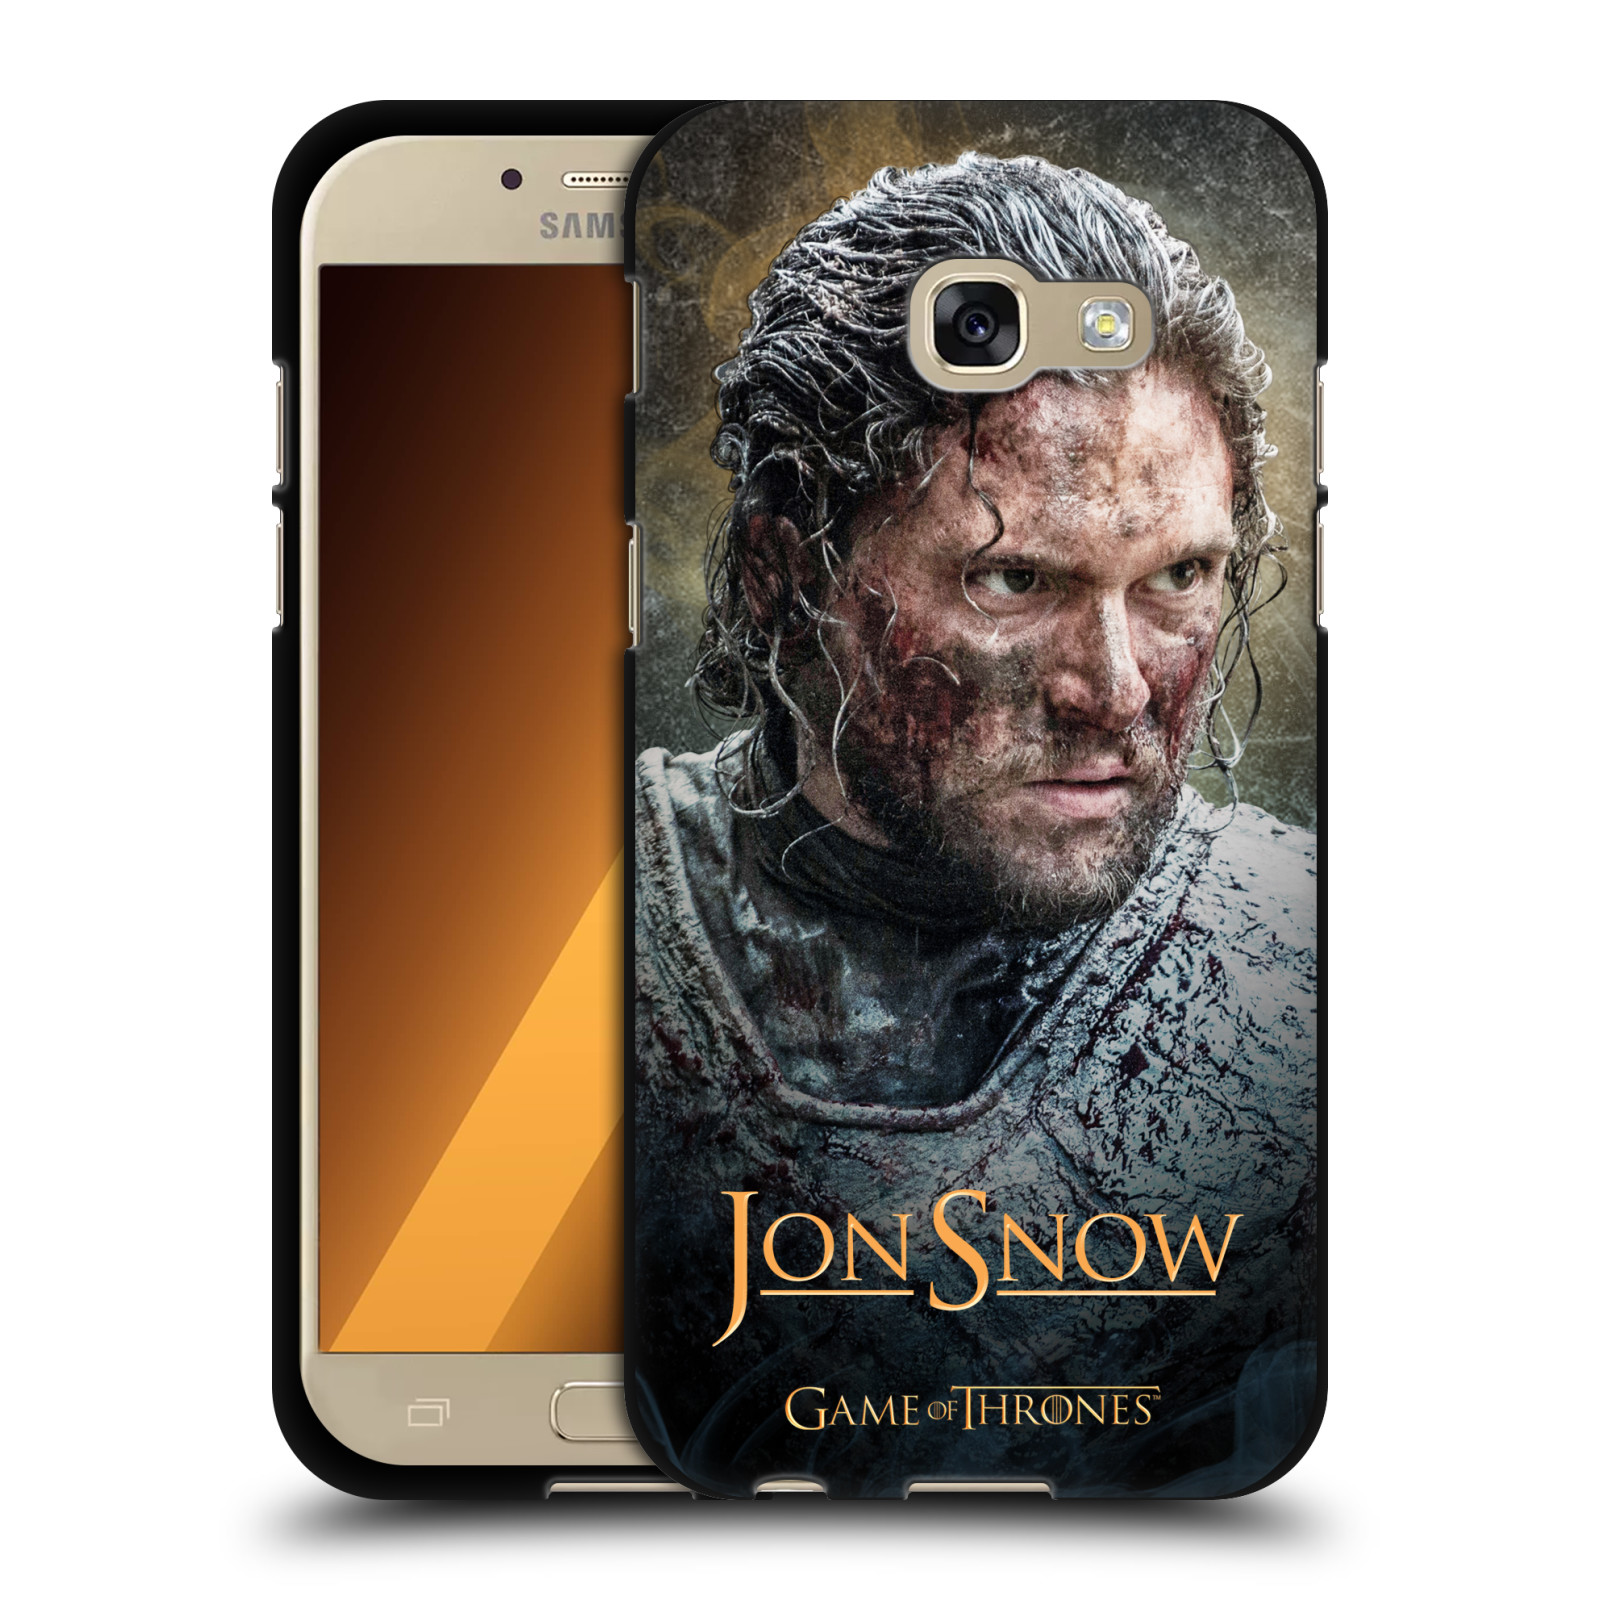 HBO-GAME-OF-THRONES-BATTLE-OF-THE-BASTARDS-BLACK-GEL-CASE-FOR-SAMSUNG-PHONES-2